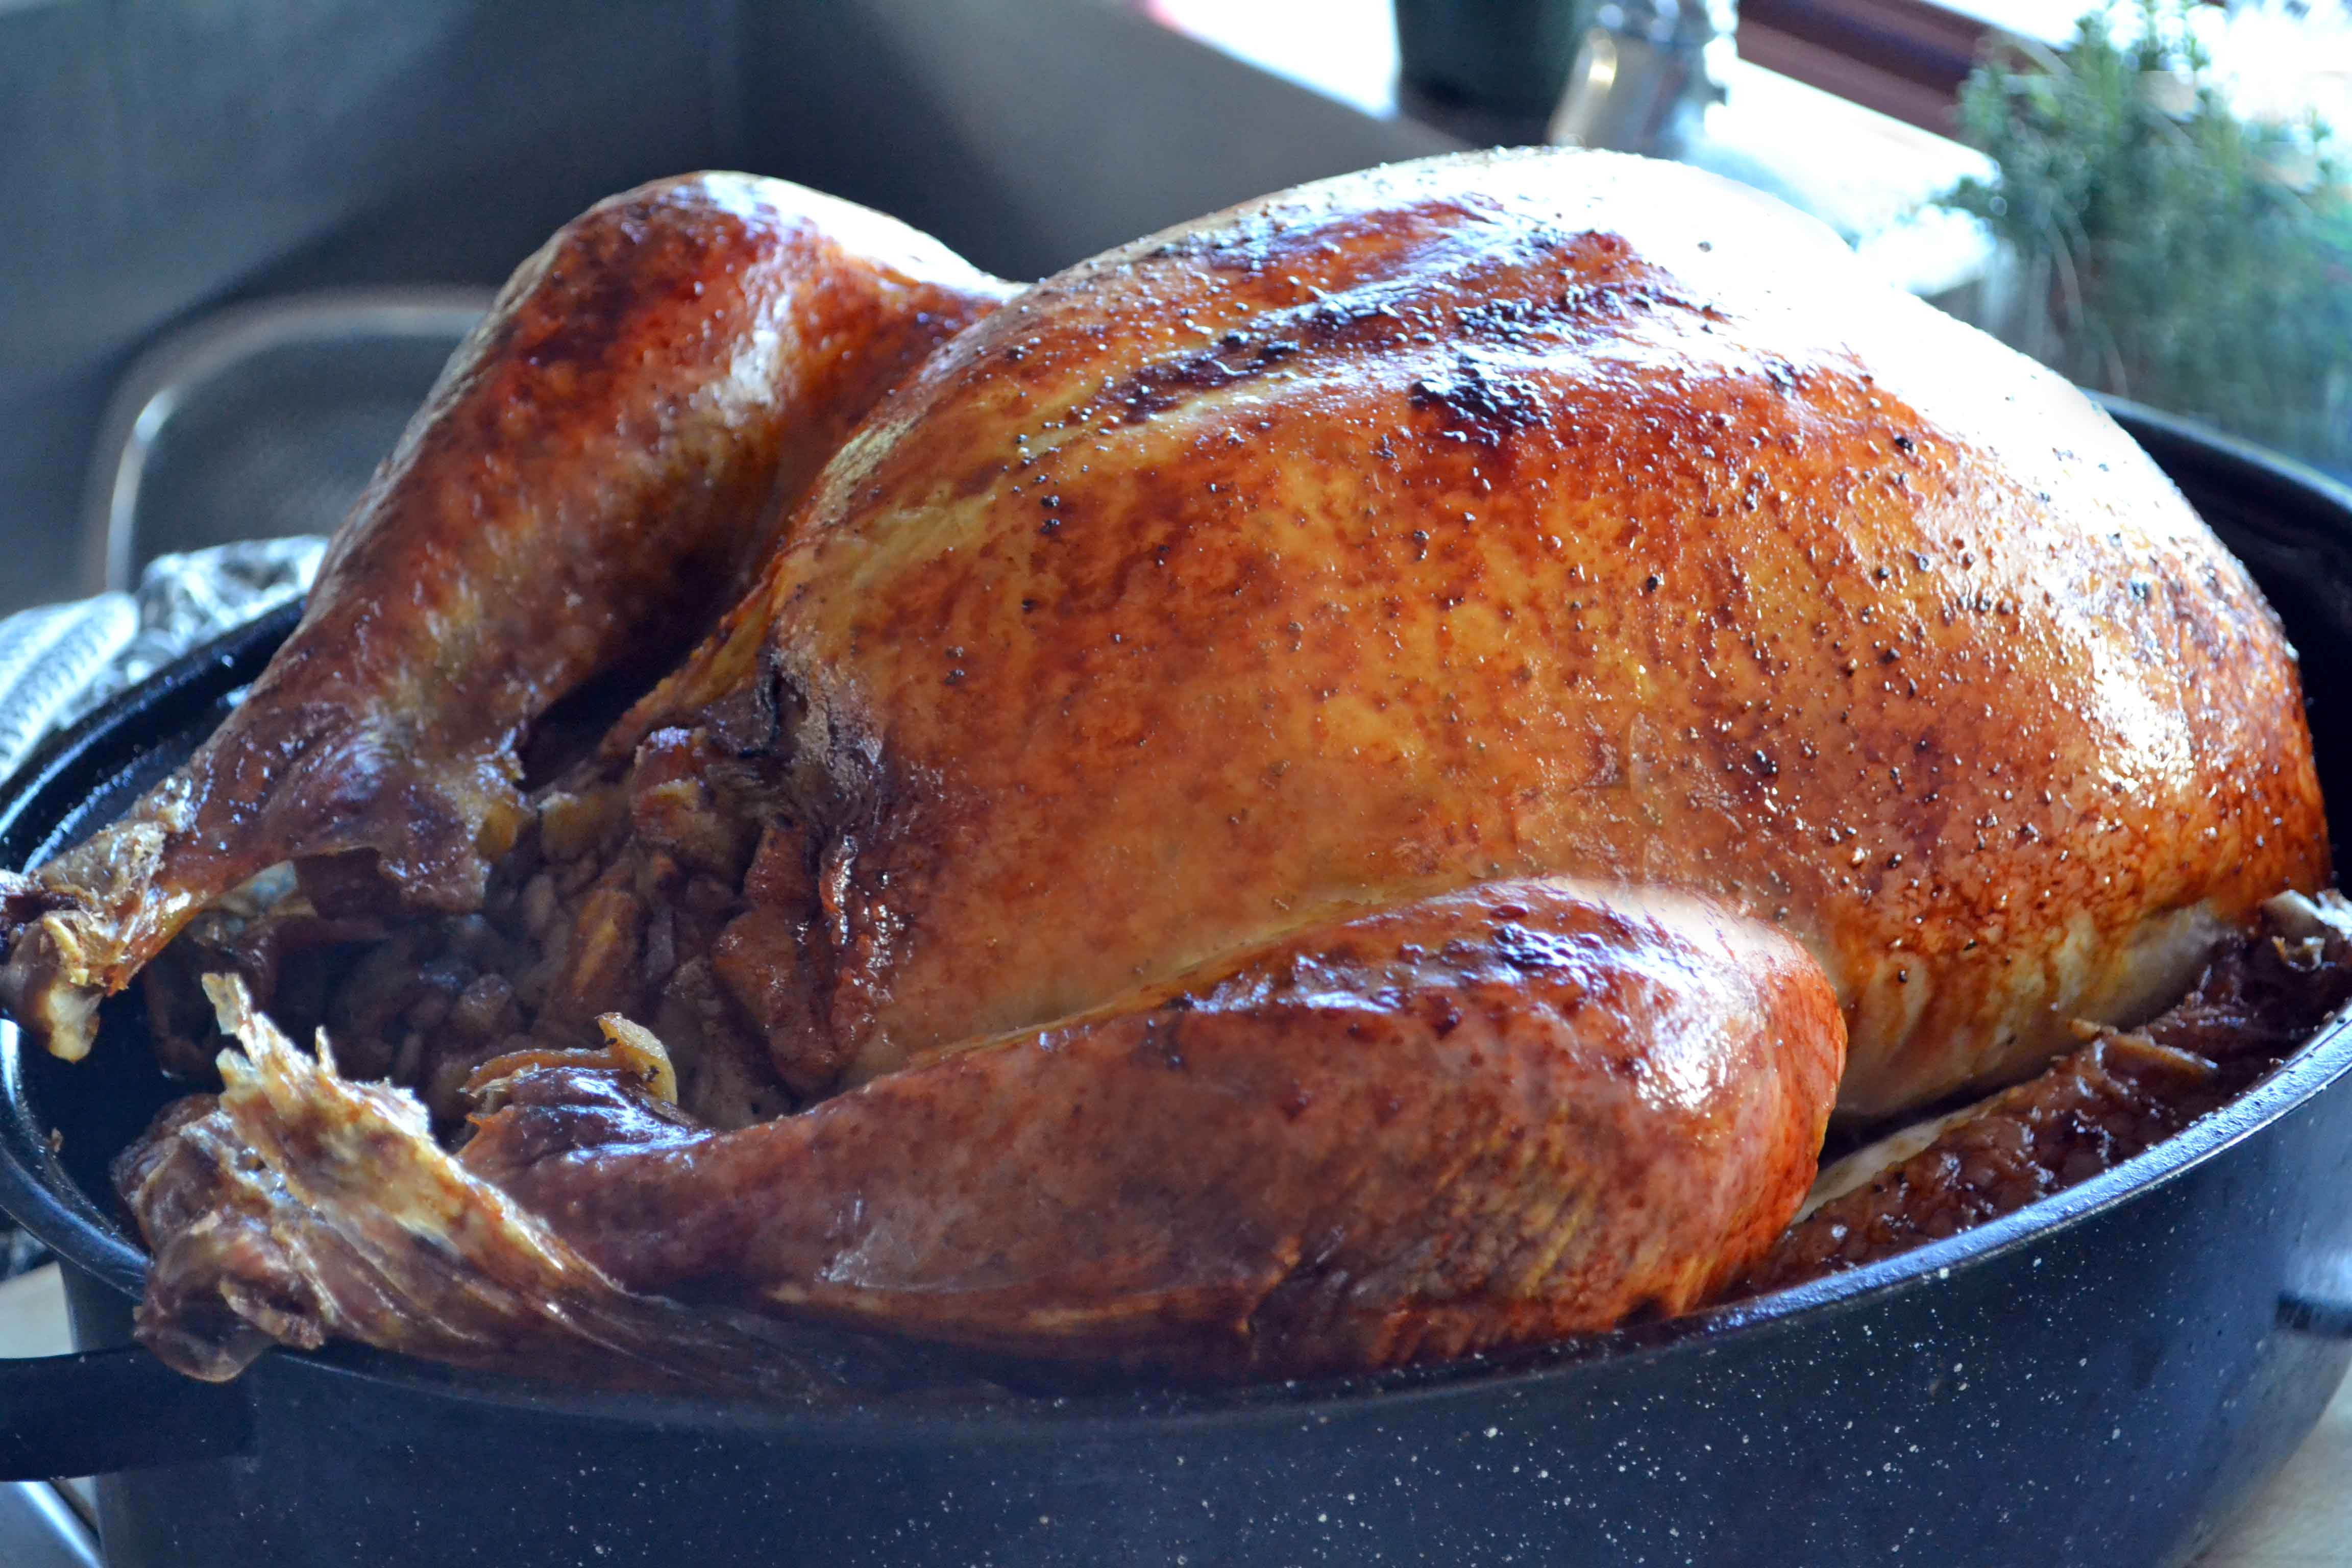 Cooked Thanksgiving Turkey  Poultry Fish & Seafood – The Best of Bridge